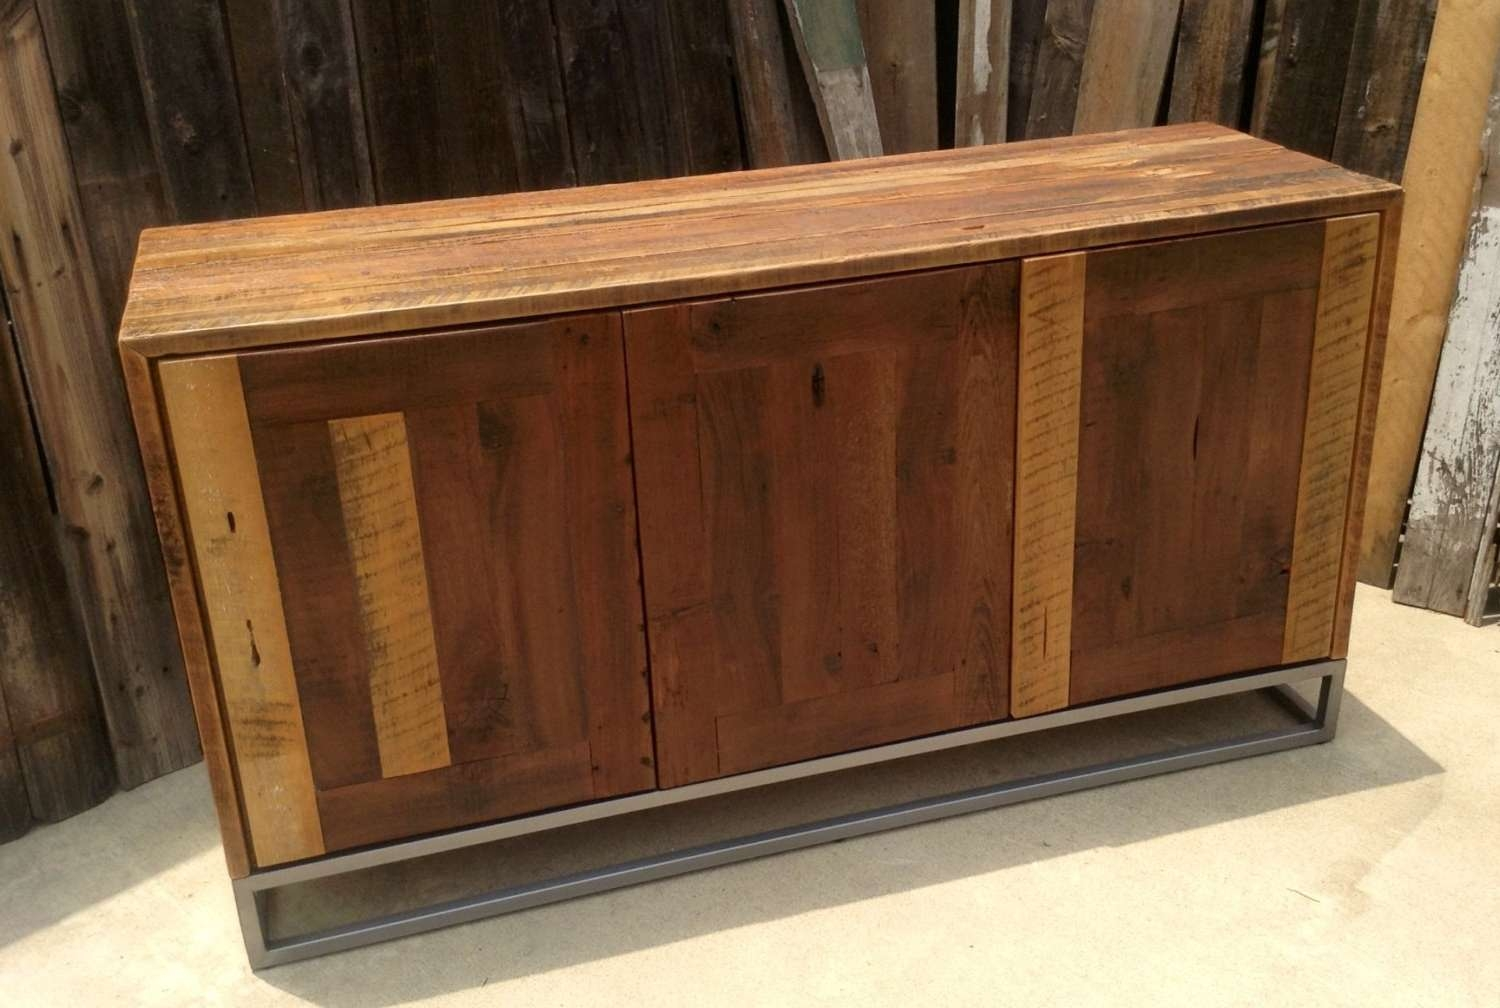 Custom Rustic Modern/ Industrial Reclaimed Wood Buffet Cabinet Inside Rustic Sideboards Buffets (View 20 of 20)